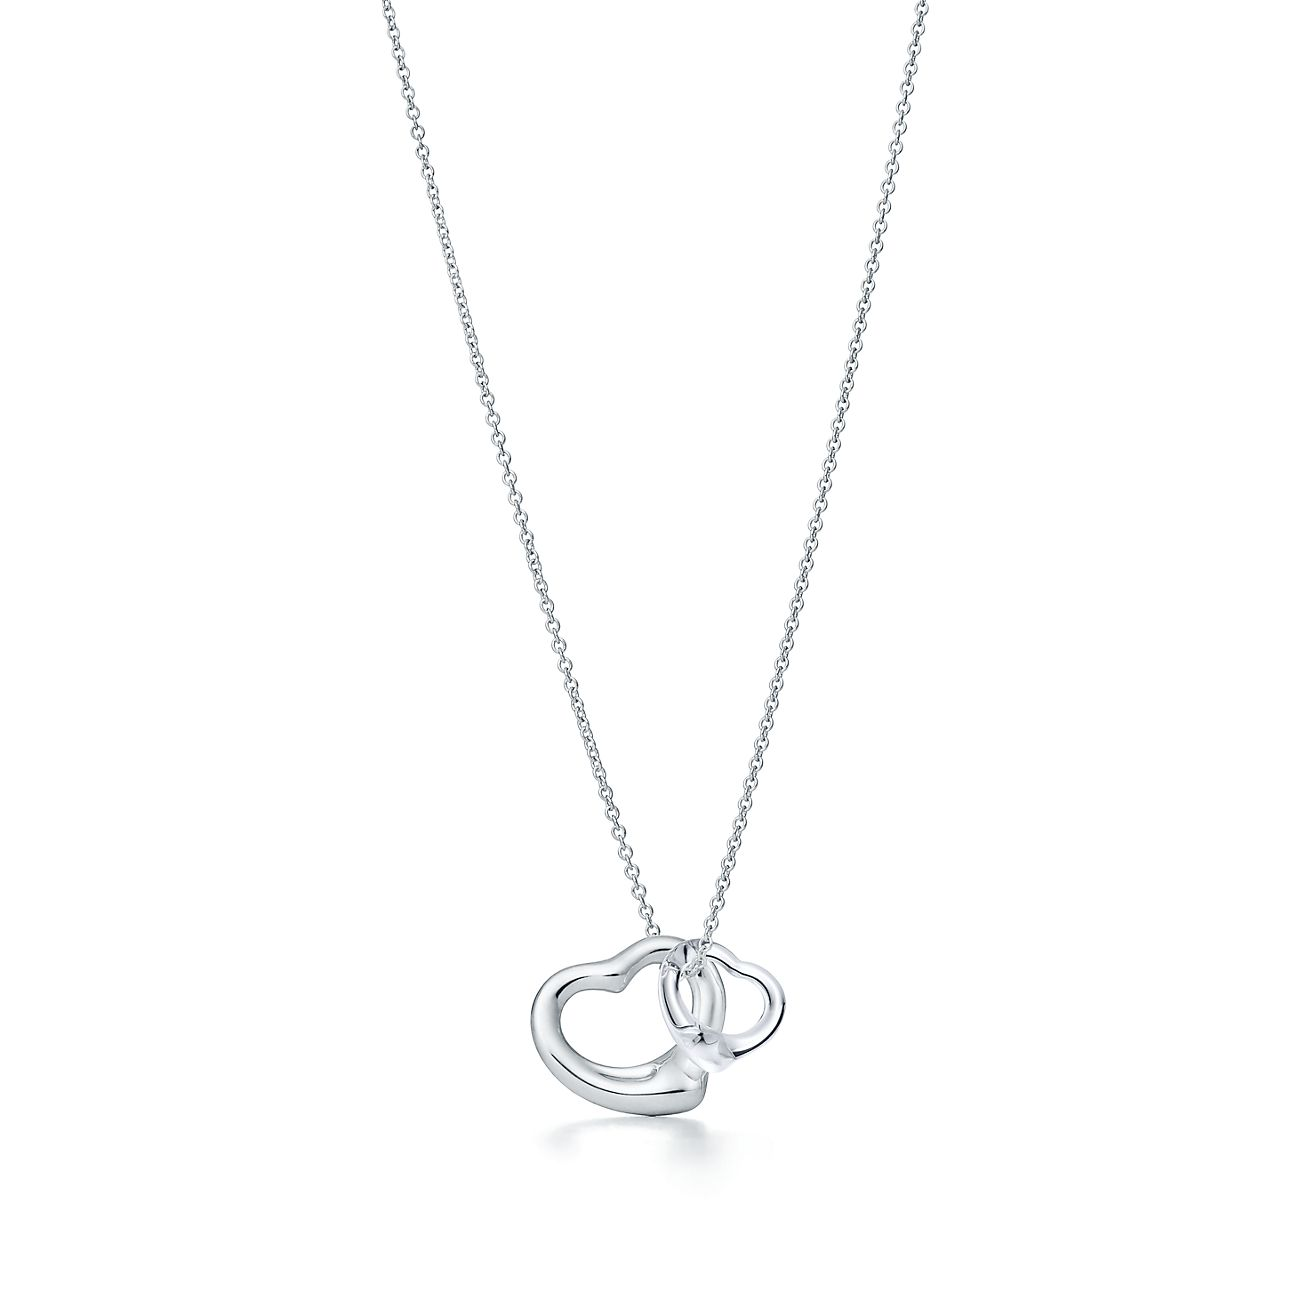 eda360f51 Elsa Peretti Open Heart Pendant Of Sterling Silver And Rock Crystal